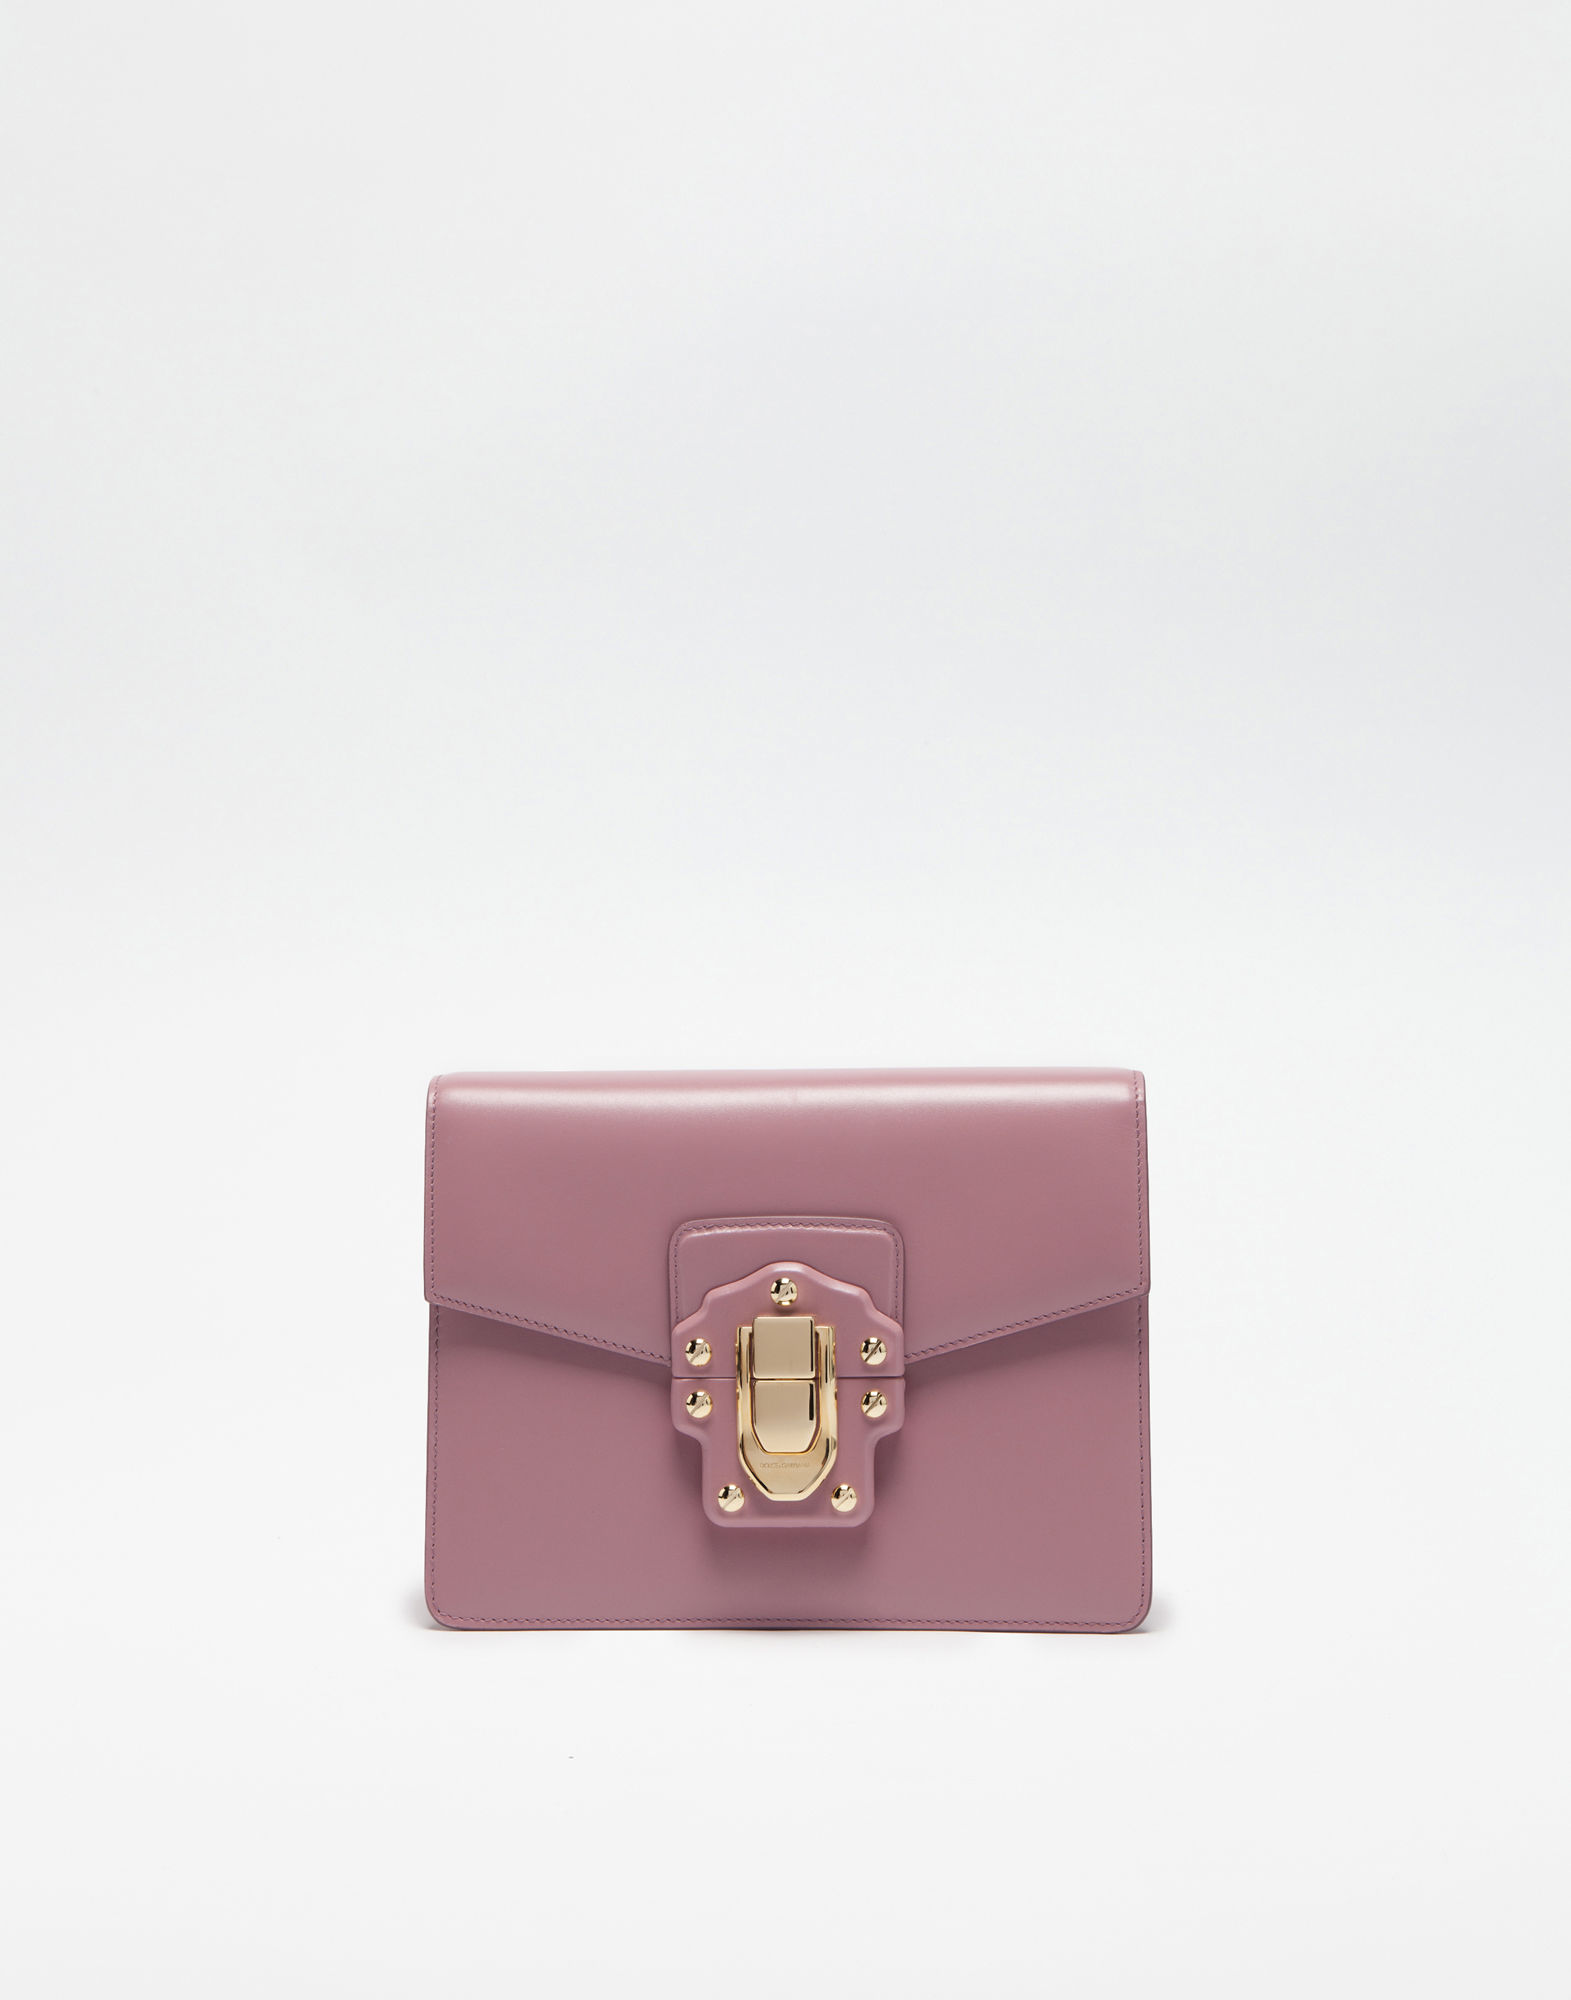 Dolce & Gabbana Leather Lucia Shoulder Bag In Powdered Pink